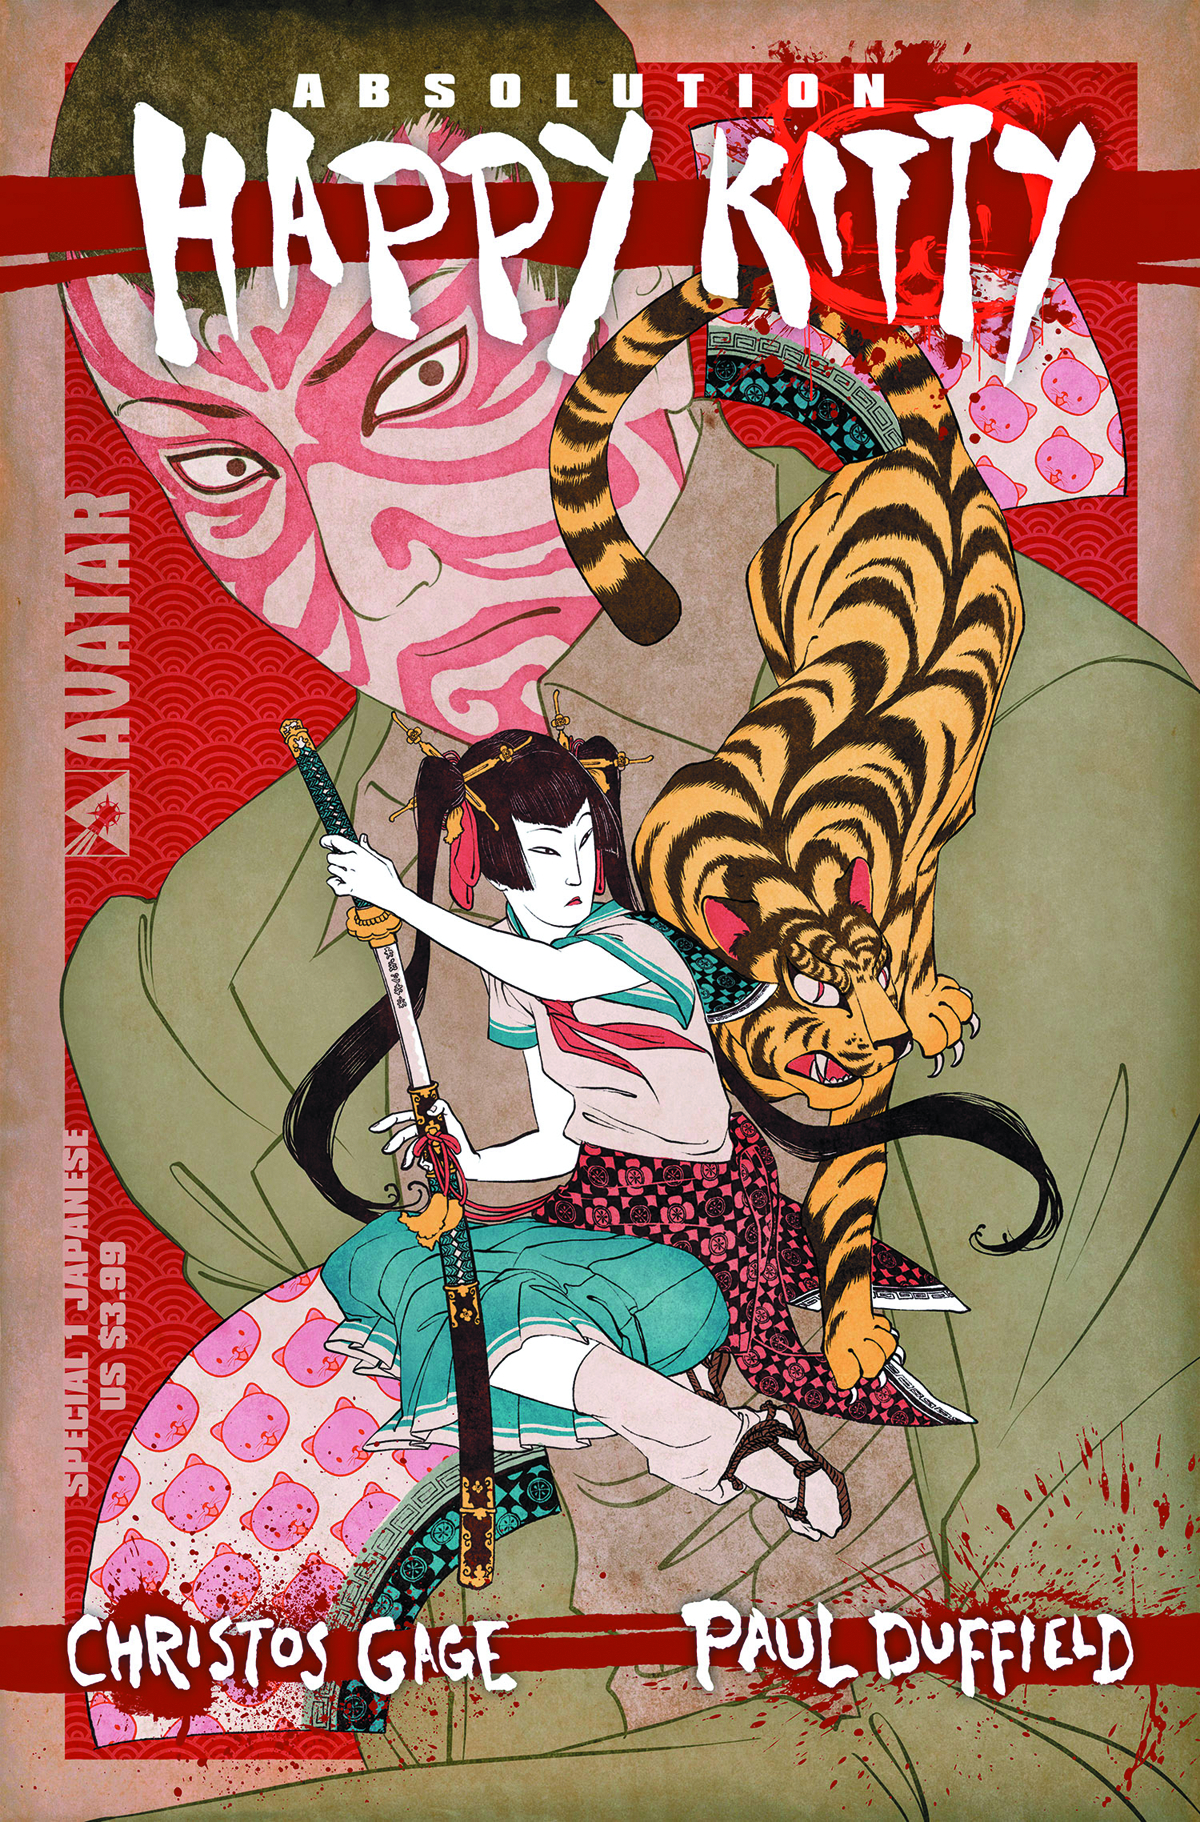 ABSOLUTION HAPPY KITTY SPECIAL #1 JAPANESE ART CVR